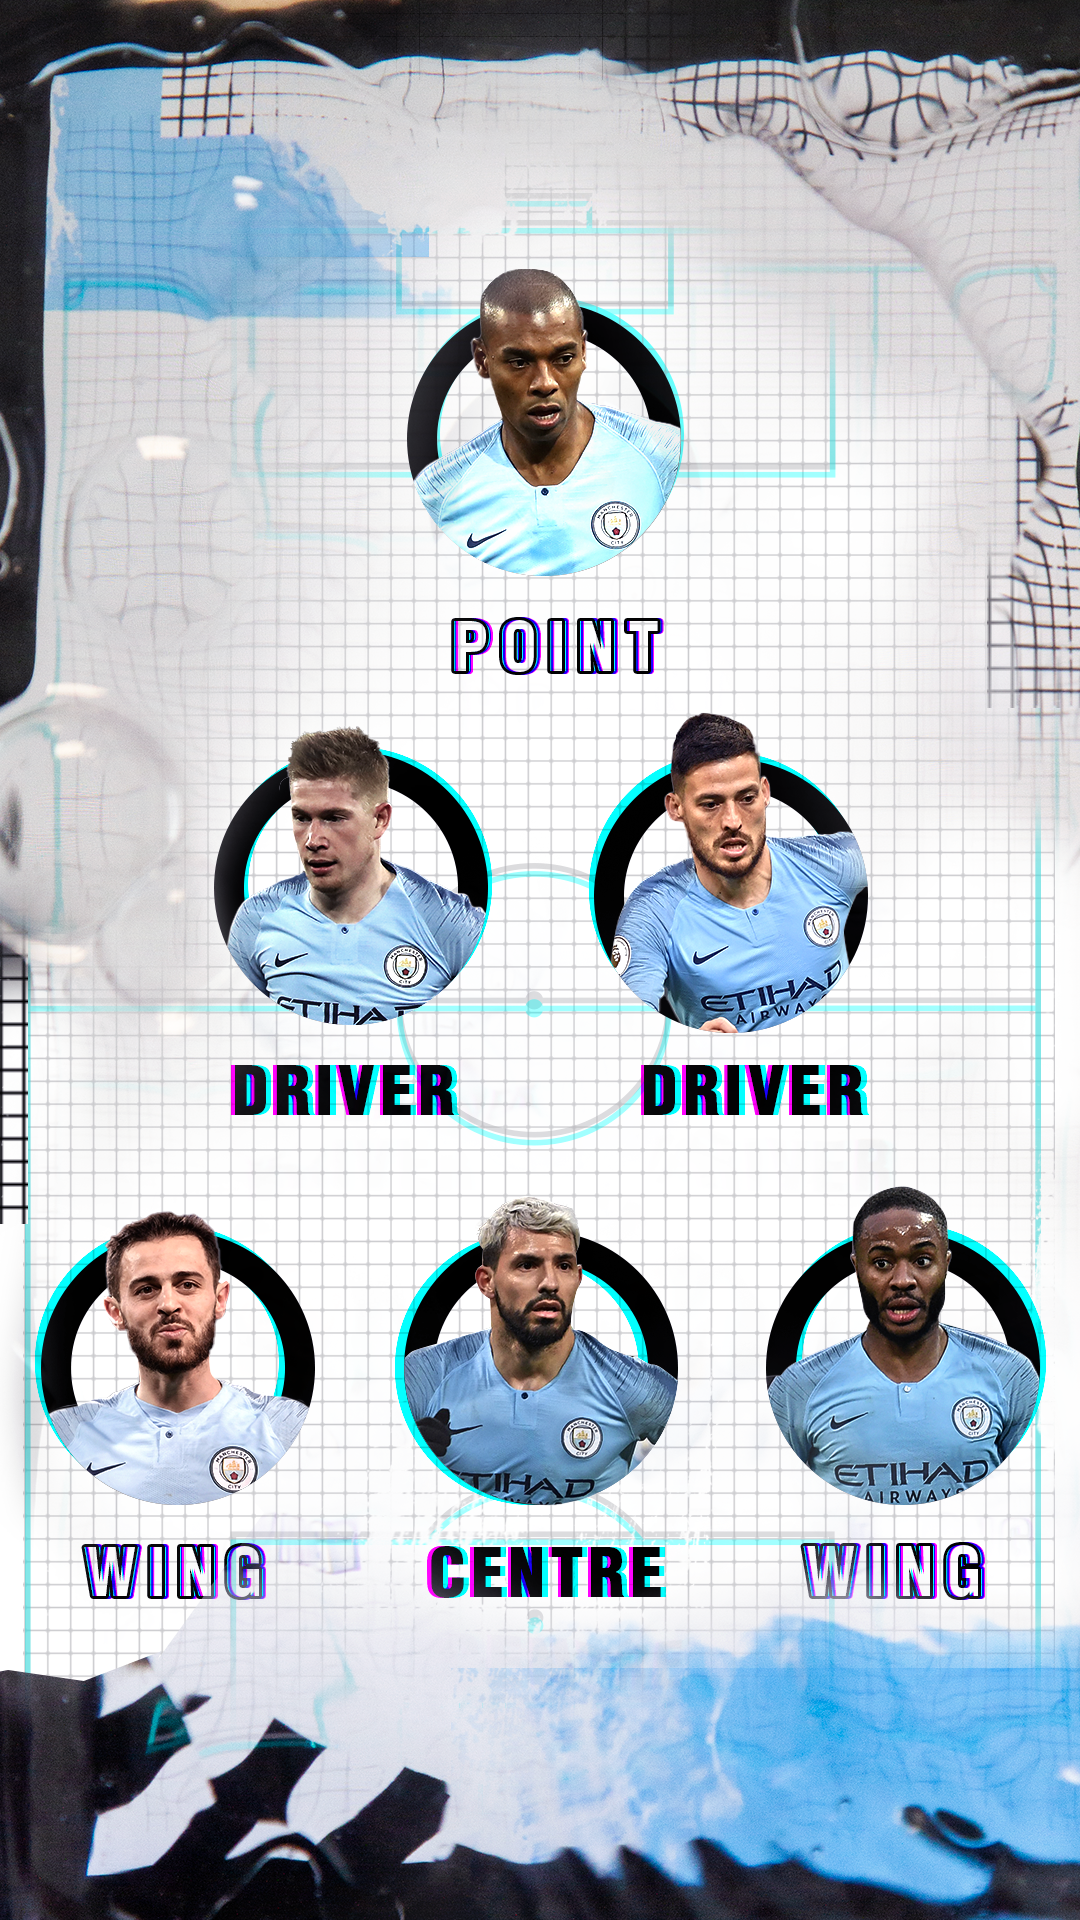 Man City formation GFX 9:16